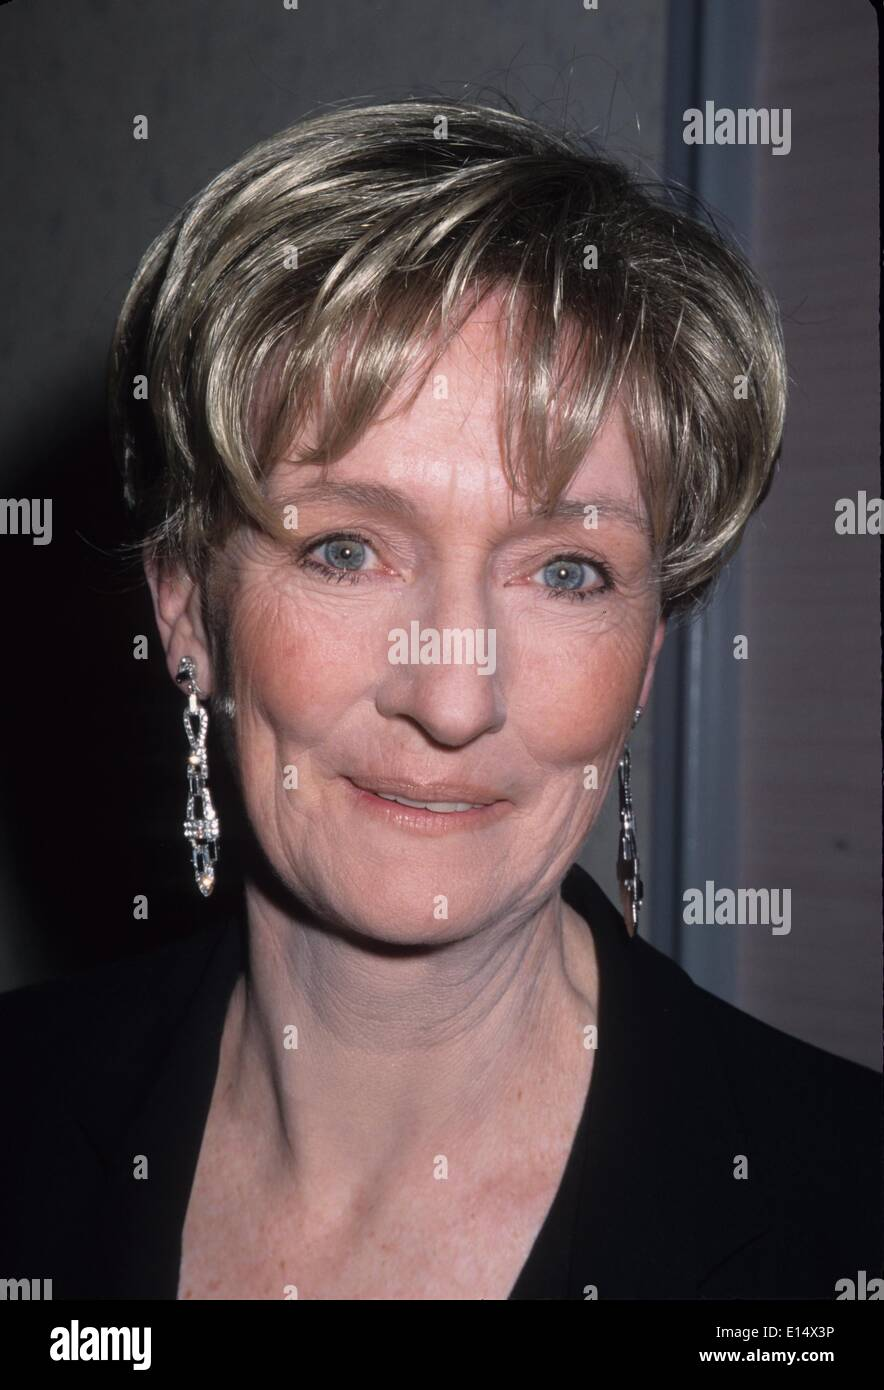 kathleen chalfant house of cardskathleen chalfant young, kathleen chalfant imdb, kathleen chalfant law and order, kathleen chalfant wiki, kathleen chalfant actress, kathleen chalfant angels in america, kathleen chalfant tv shows, kathleen chalfant house of cards, kathleen chalfant biography, kathleen chalfant net worth, kathleen chalfant tv, kathleen chalfant rose, kathleen chalfant broadway, kathleen chalfant brooklyn, kathleen chalfant filmography, kathleen chalfant images, kathleen chalfant rose kennedy, kathleen chalfant israel, kathleen chalfant pictures